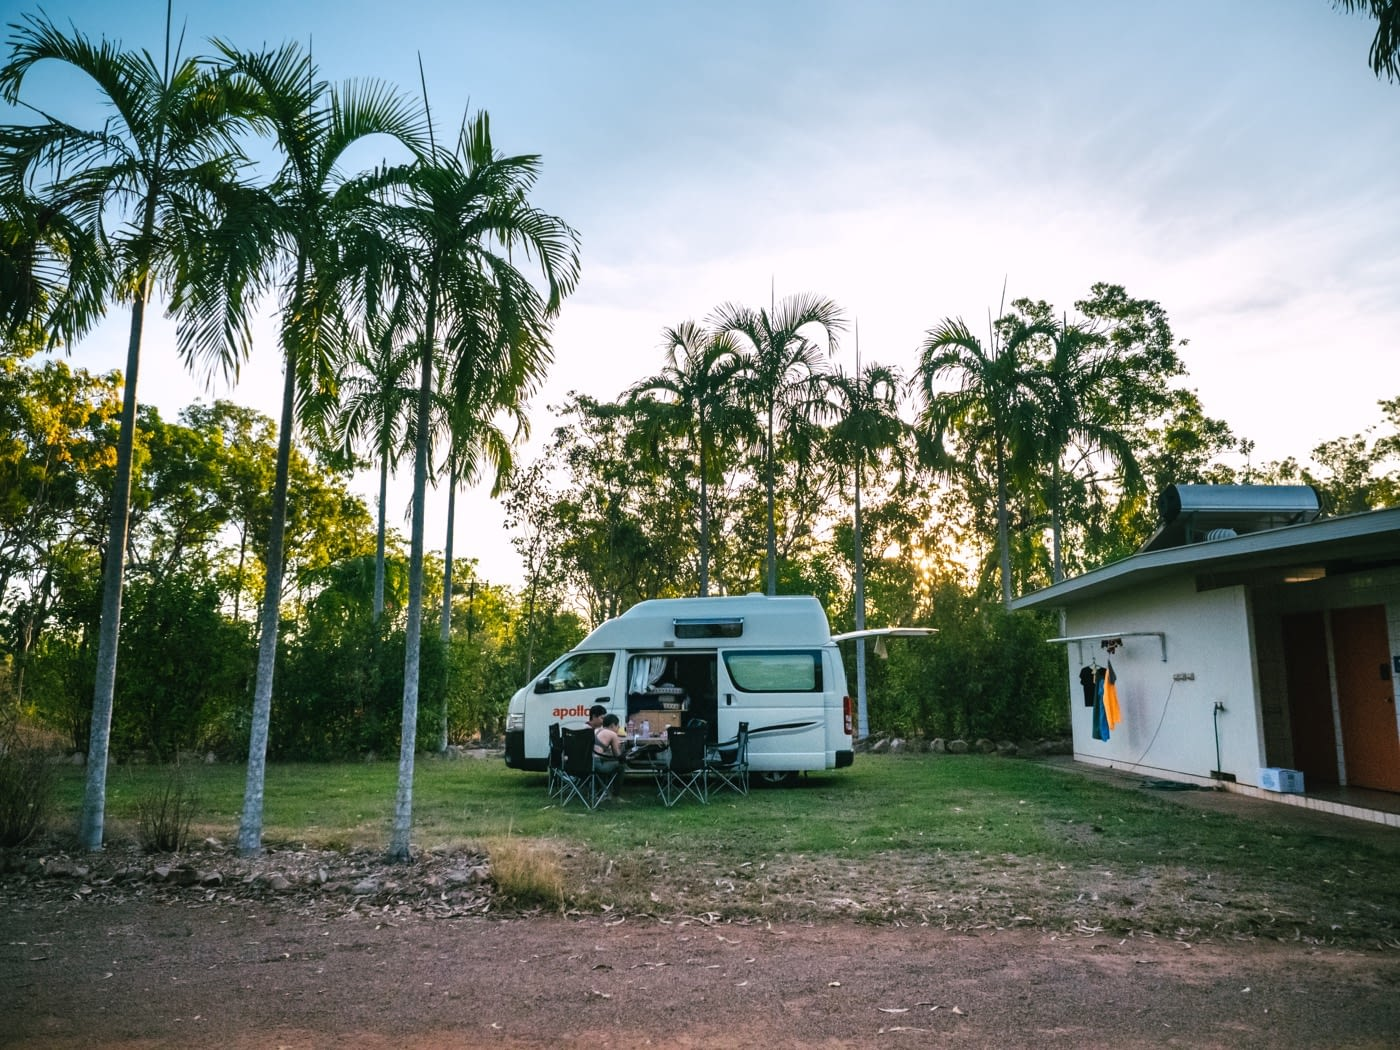 Spacious powered site at Batchelor Holiday Park